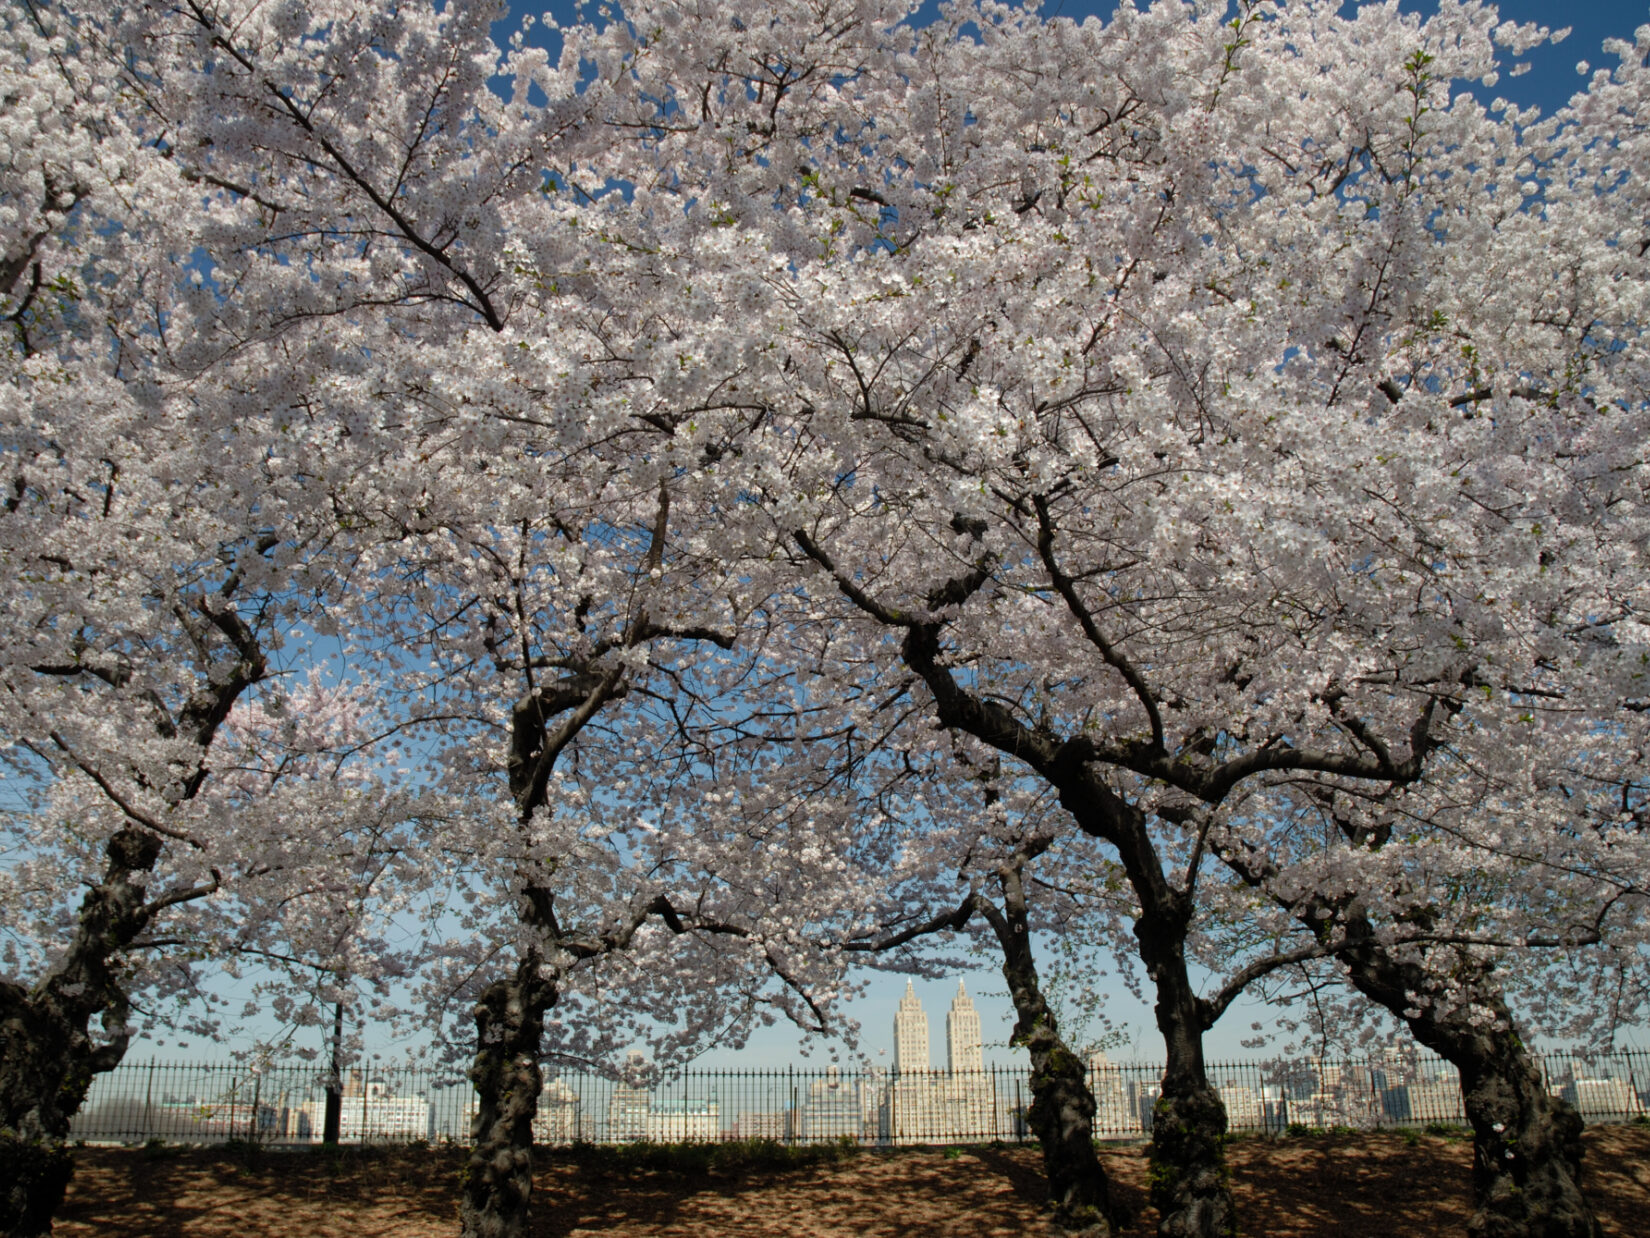 The dark bark of cherry trees are seen beneath a canopy of spring blossoms, with the fence around the Schuman track silhouetted at the bottom.